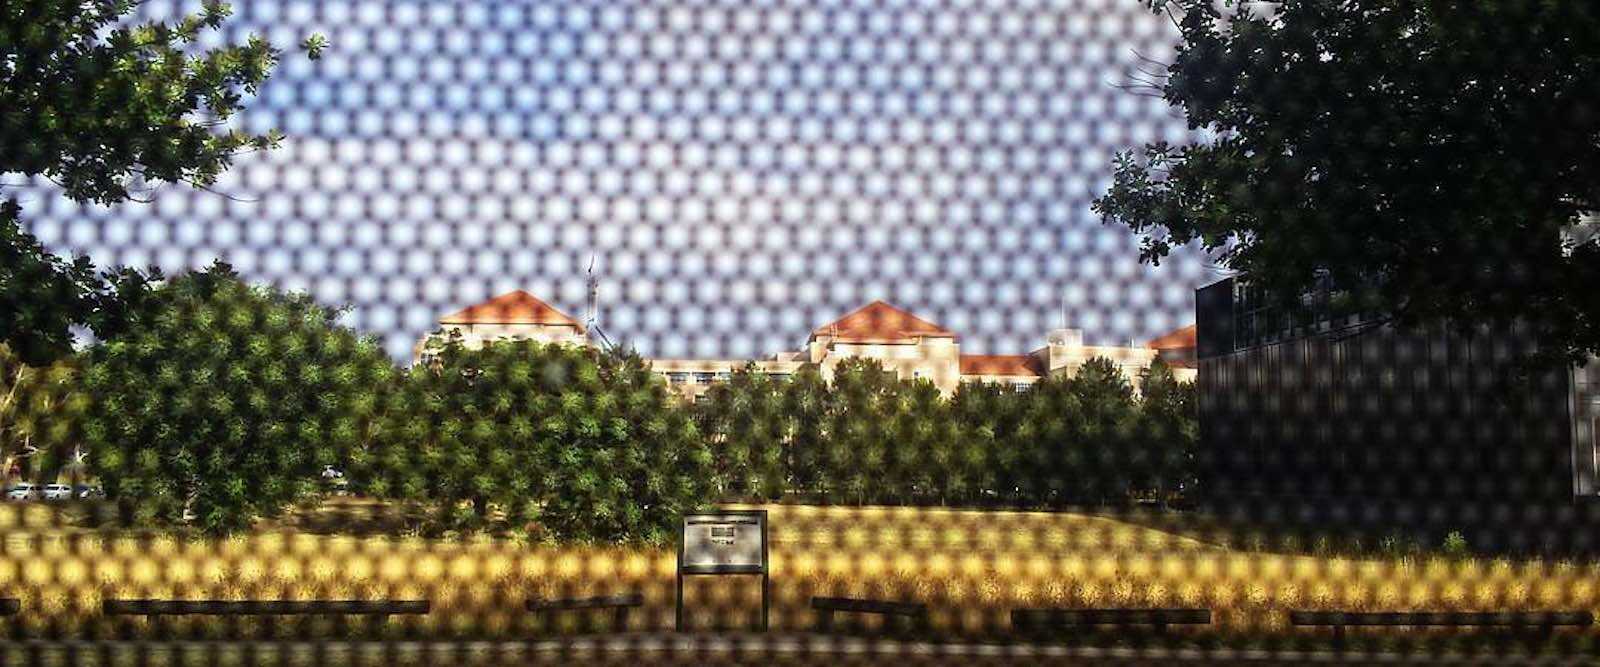 Sometimes it can be how you view the world, or what gets in the way: The R G Casey Building, which houses the Department of Foreign Affairs and Trade, Canberra (Kate Bunker/Flickr)